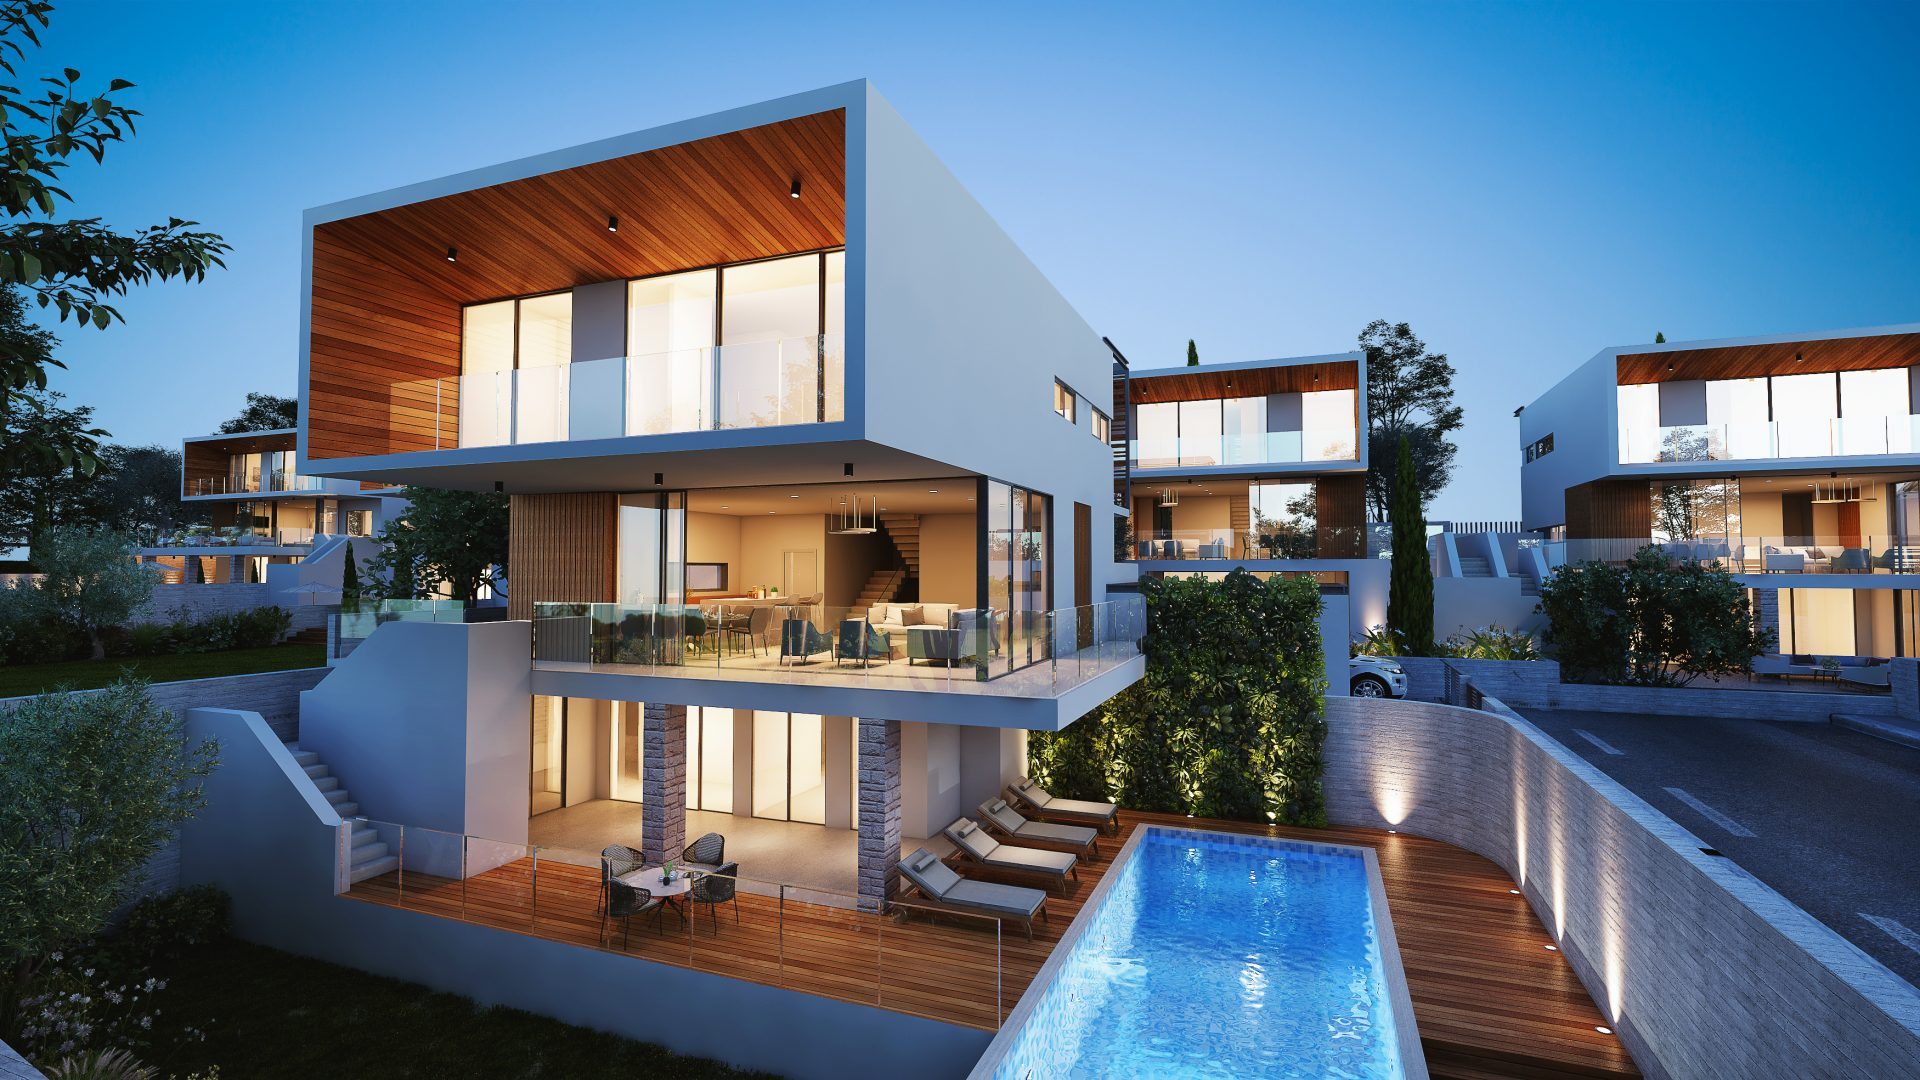 The Gallery Becomes the Luxury Lifestyle Awards Winning Real Estate in  Cyprus - Luxury Lifestyle Awards